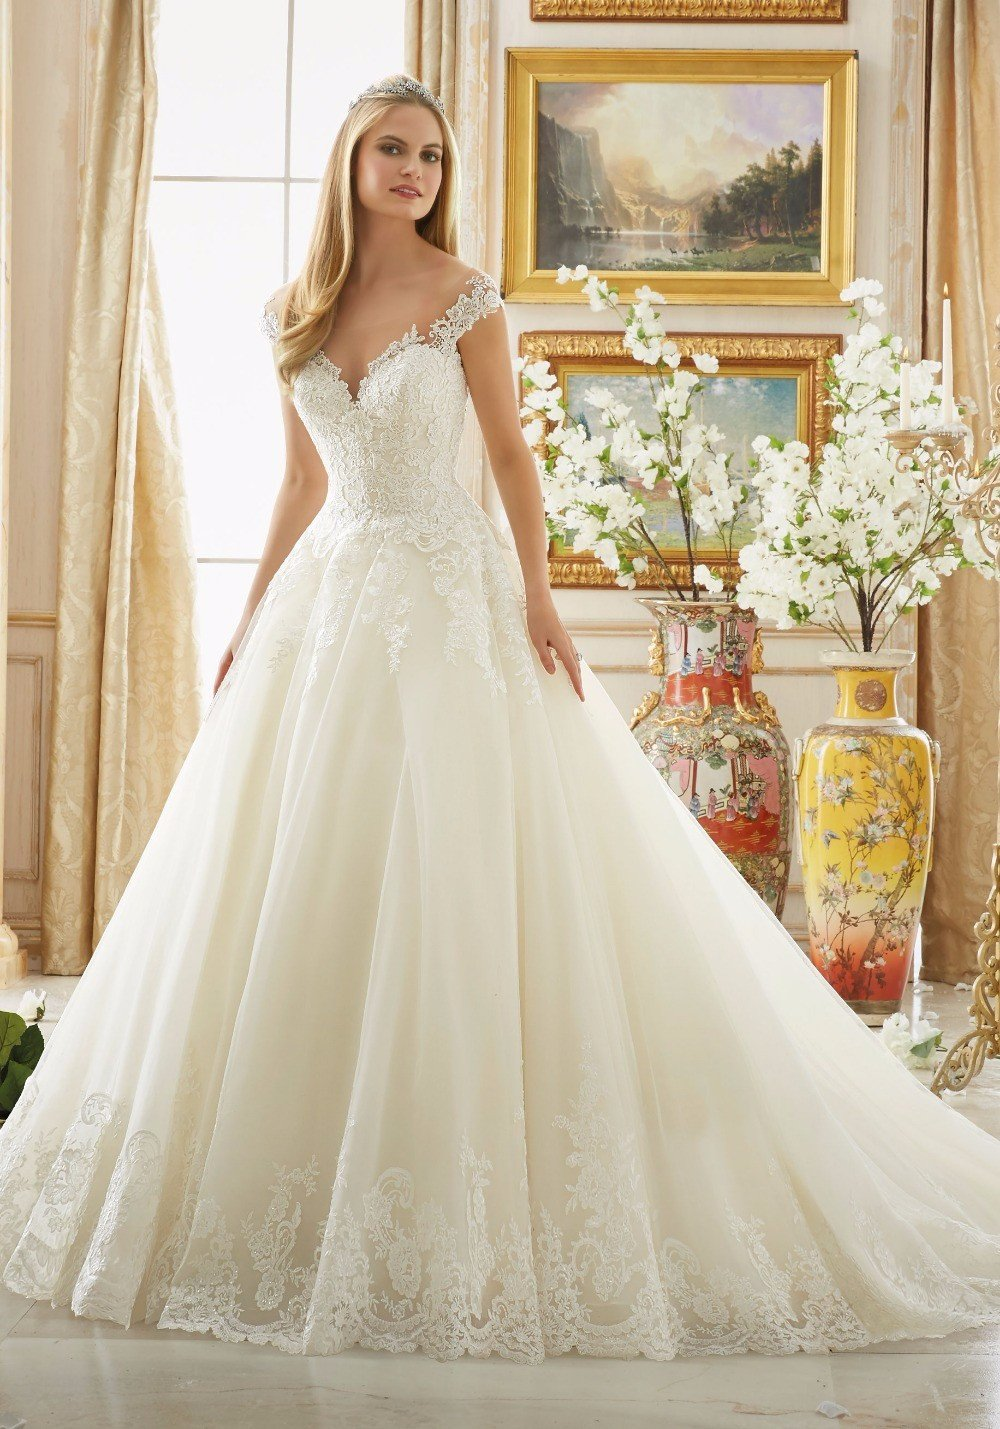 Luxury Ball Gown Wedding Dresses 2017 Cap Sleeves with Sheer Back ...